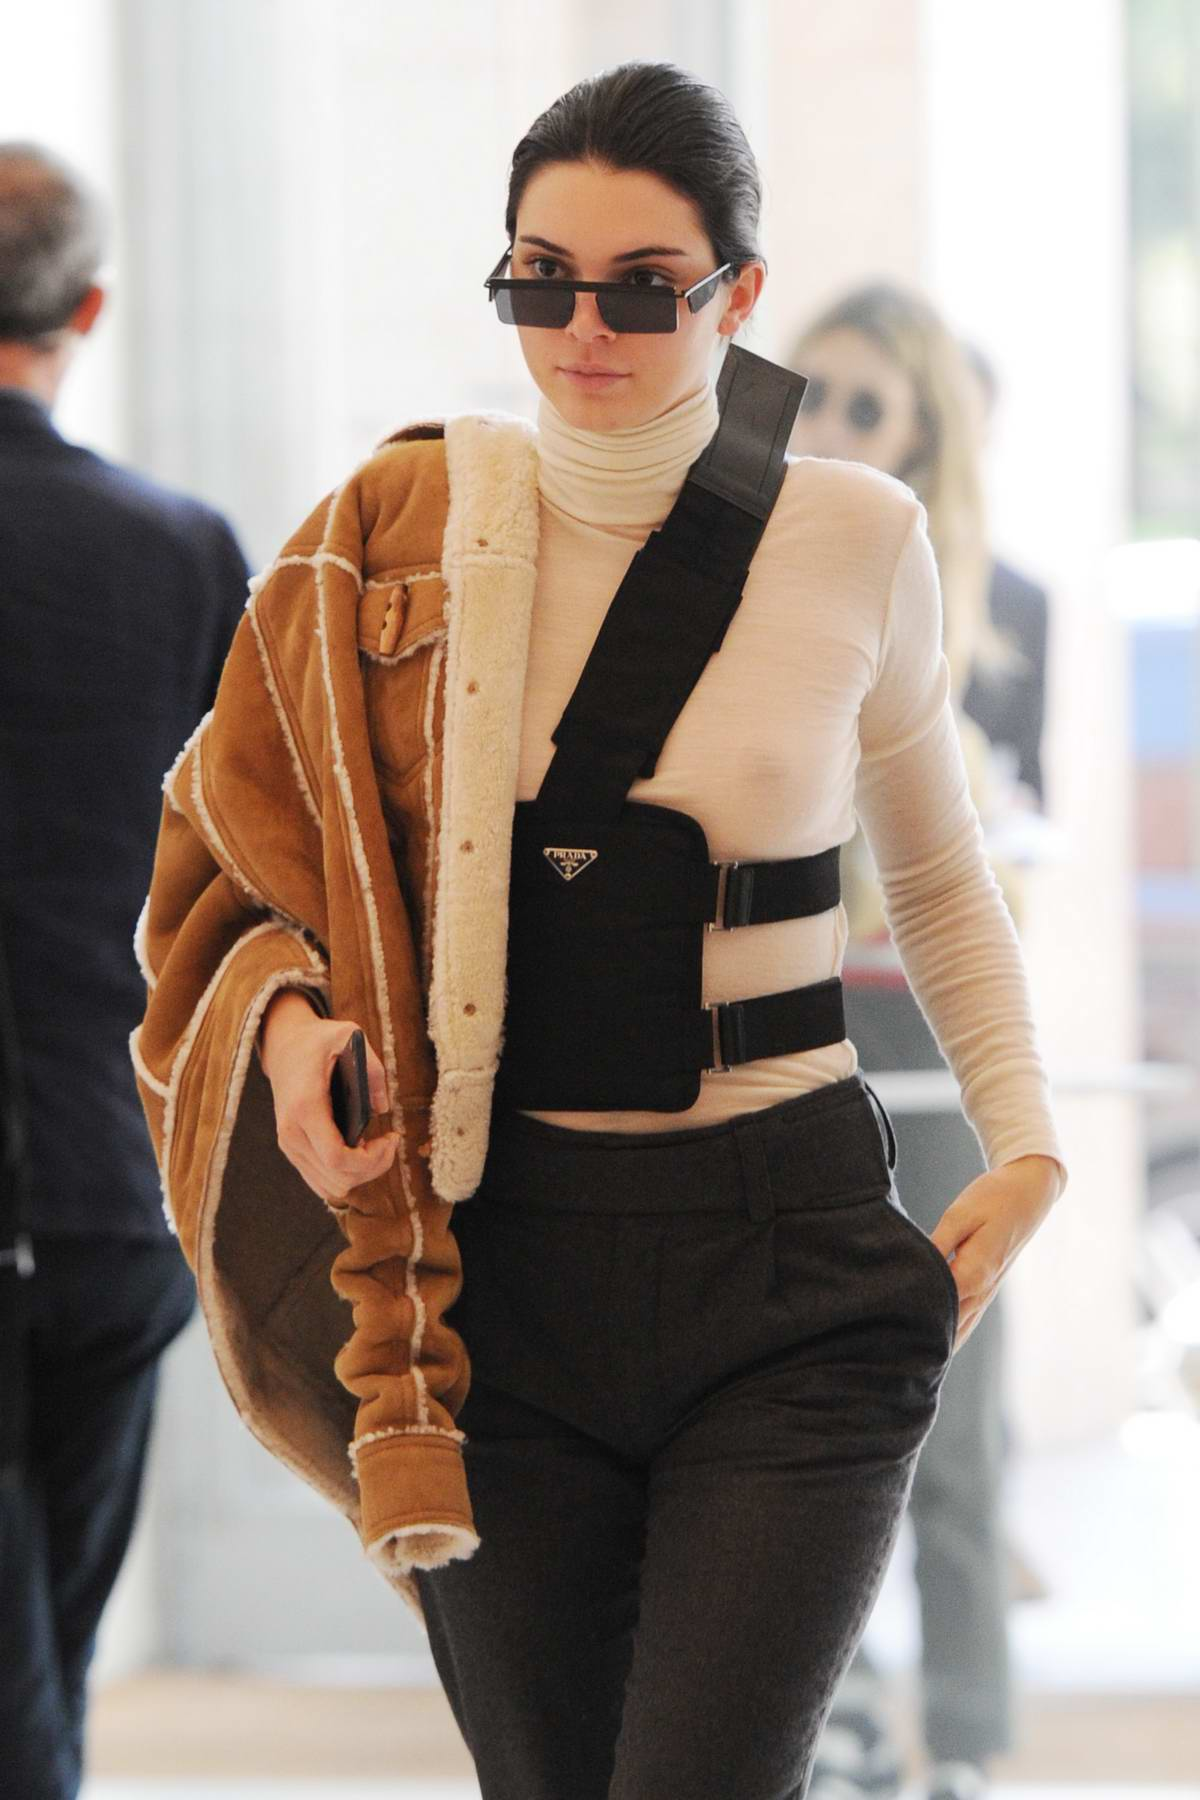 Kendall Jenner out and about during Fashion Week in Milan, Italy